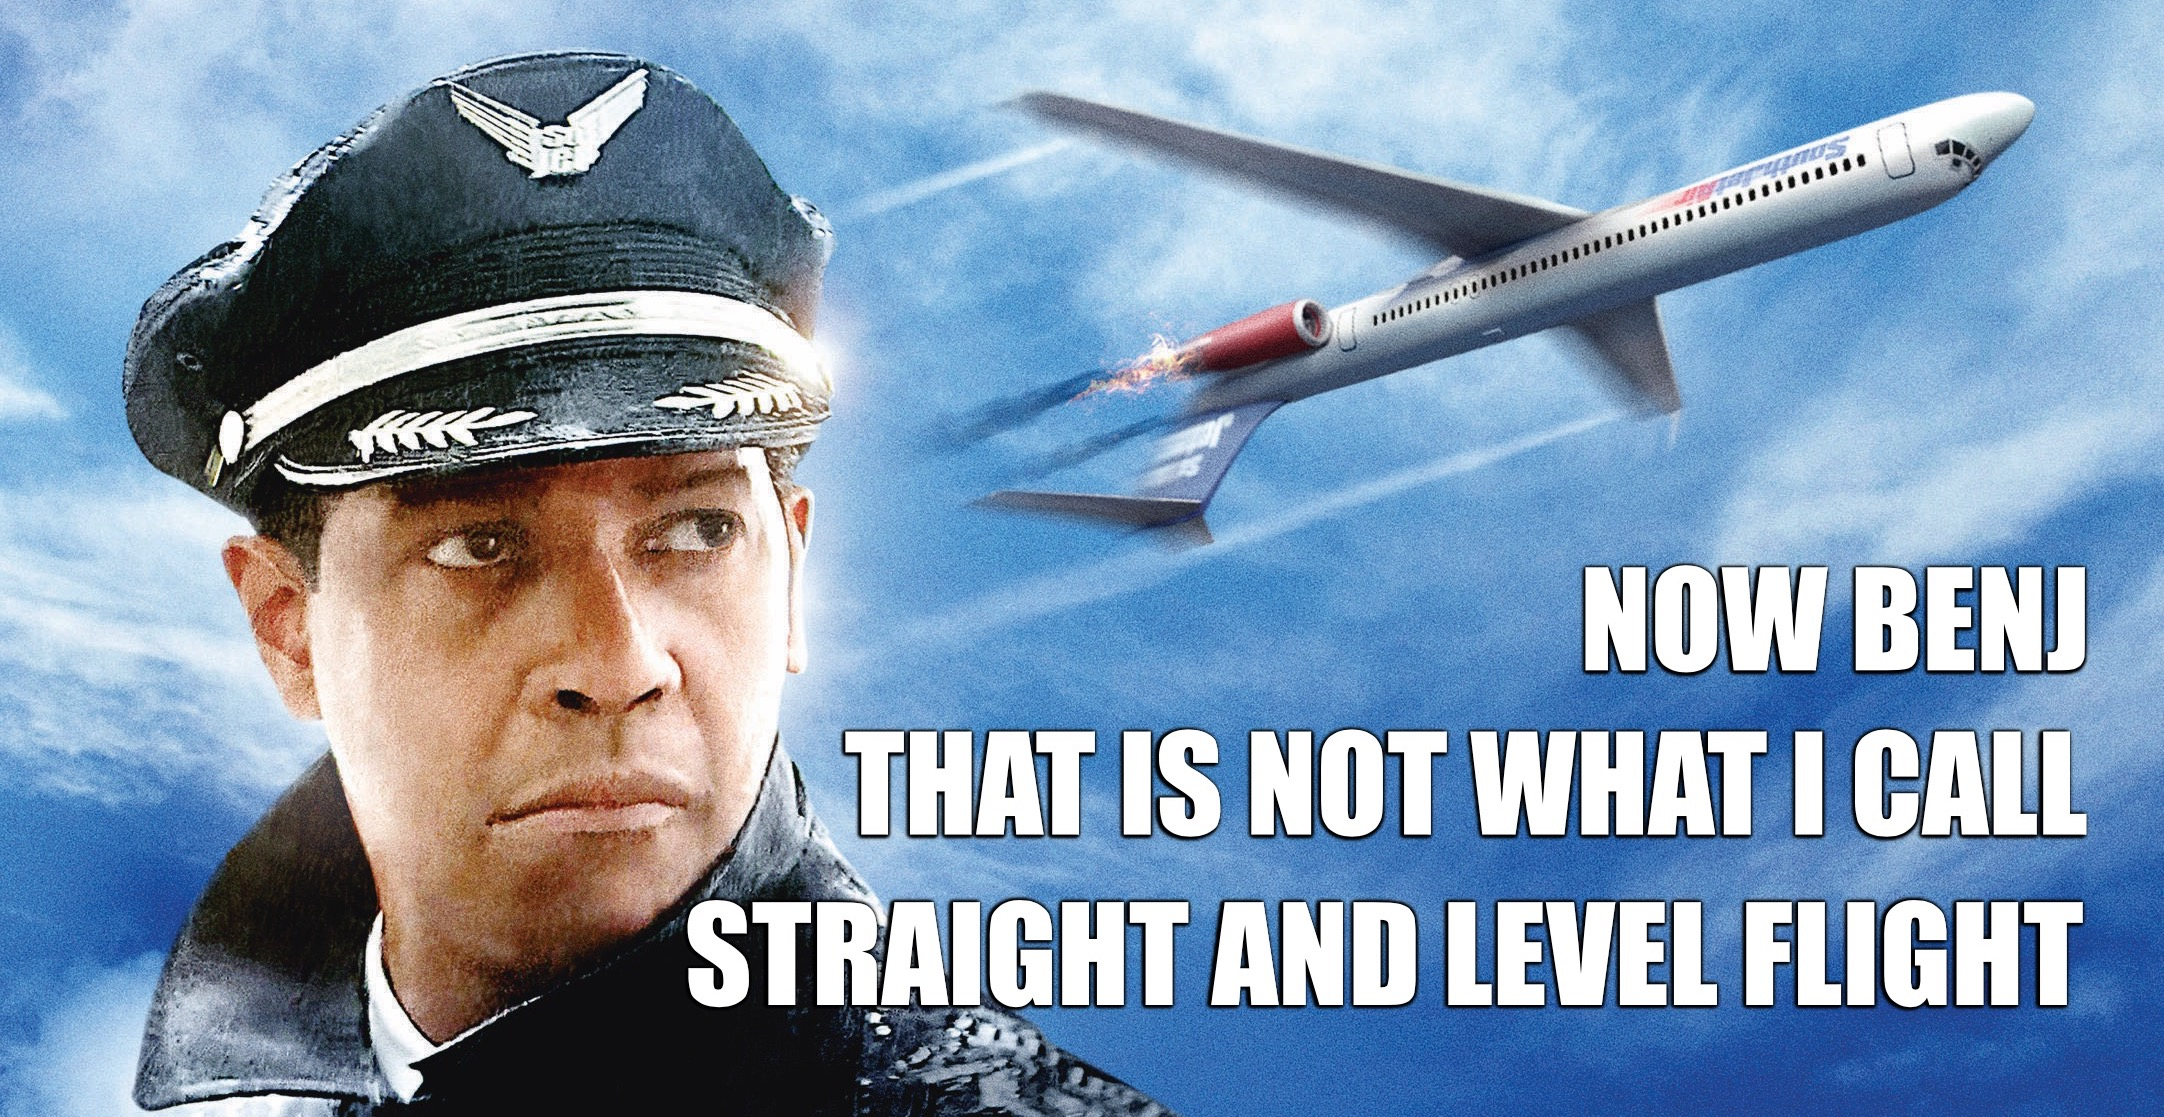 Now Benj, that is not what I call straight and level flight.